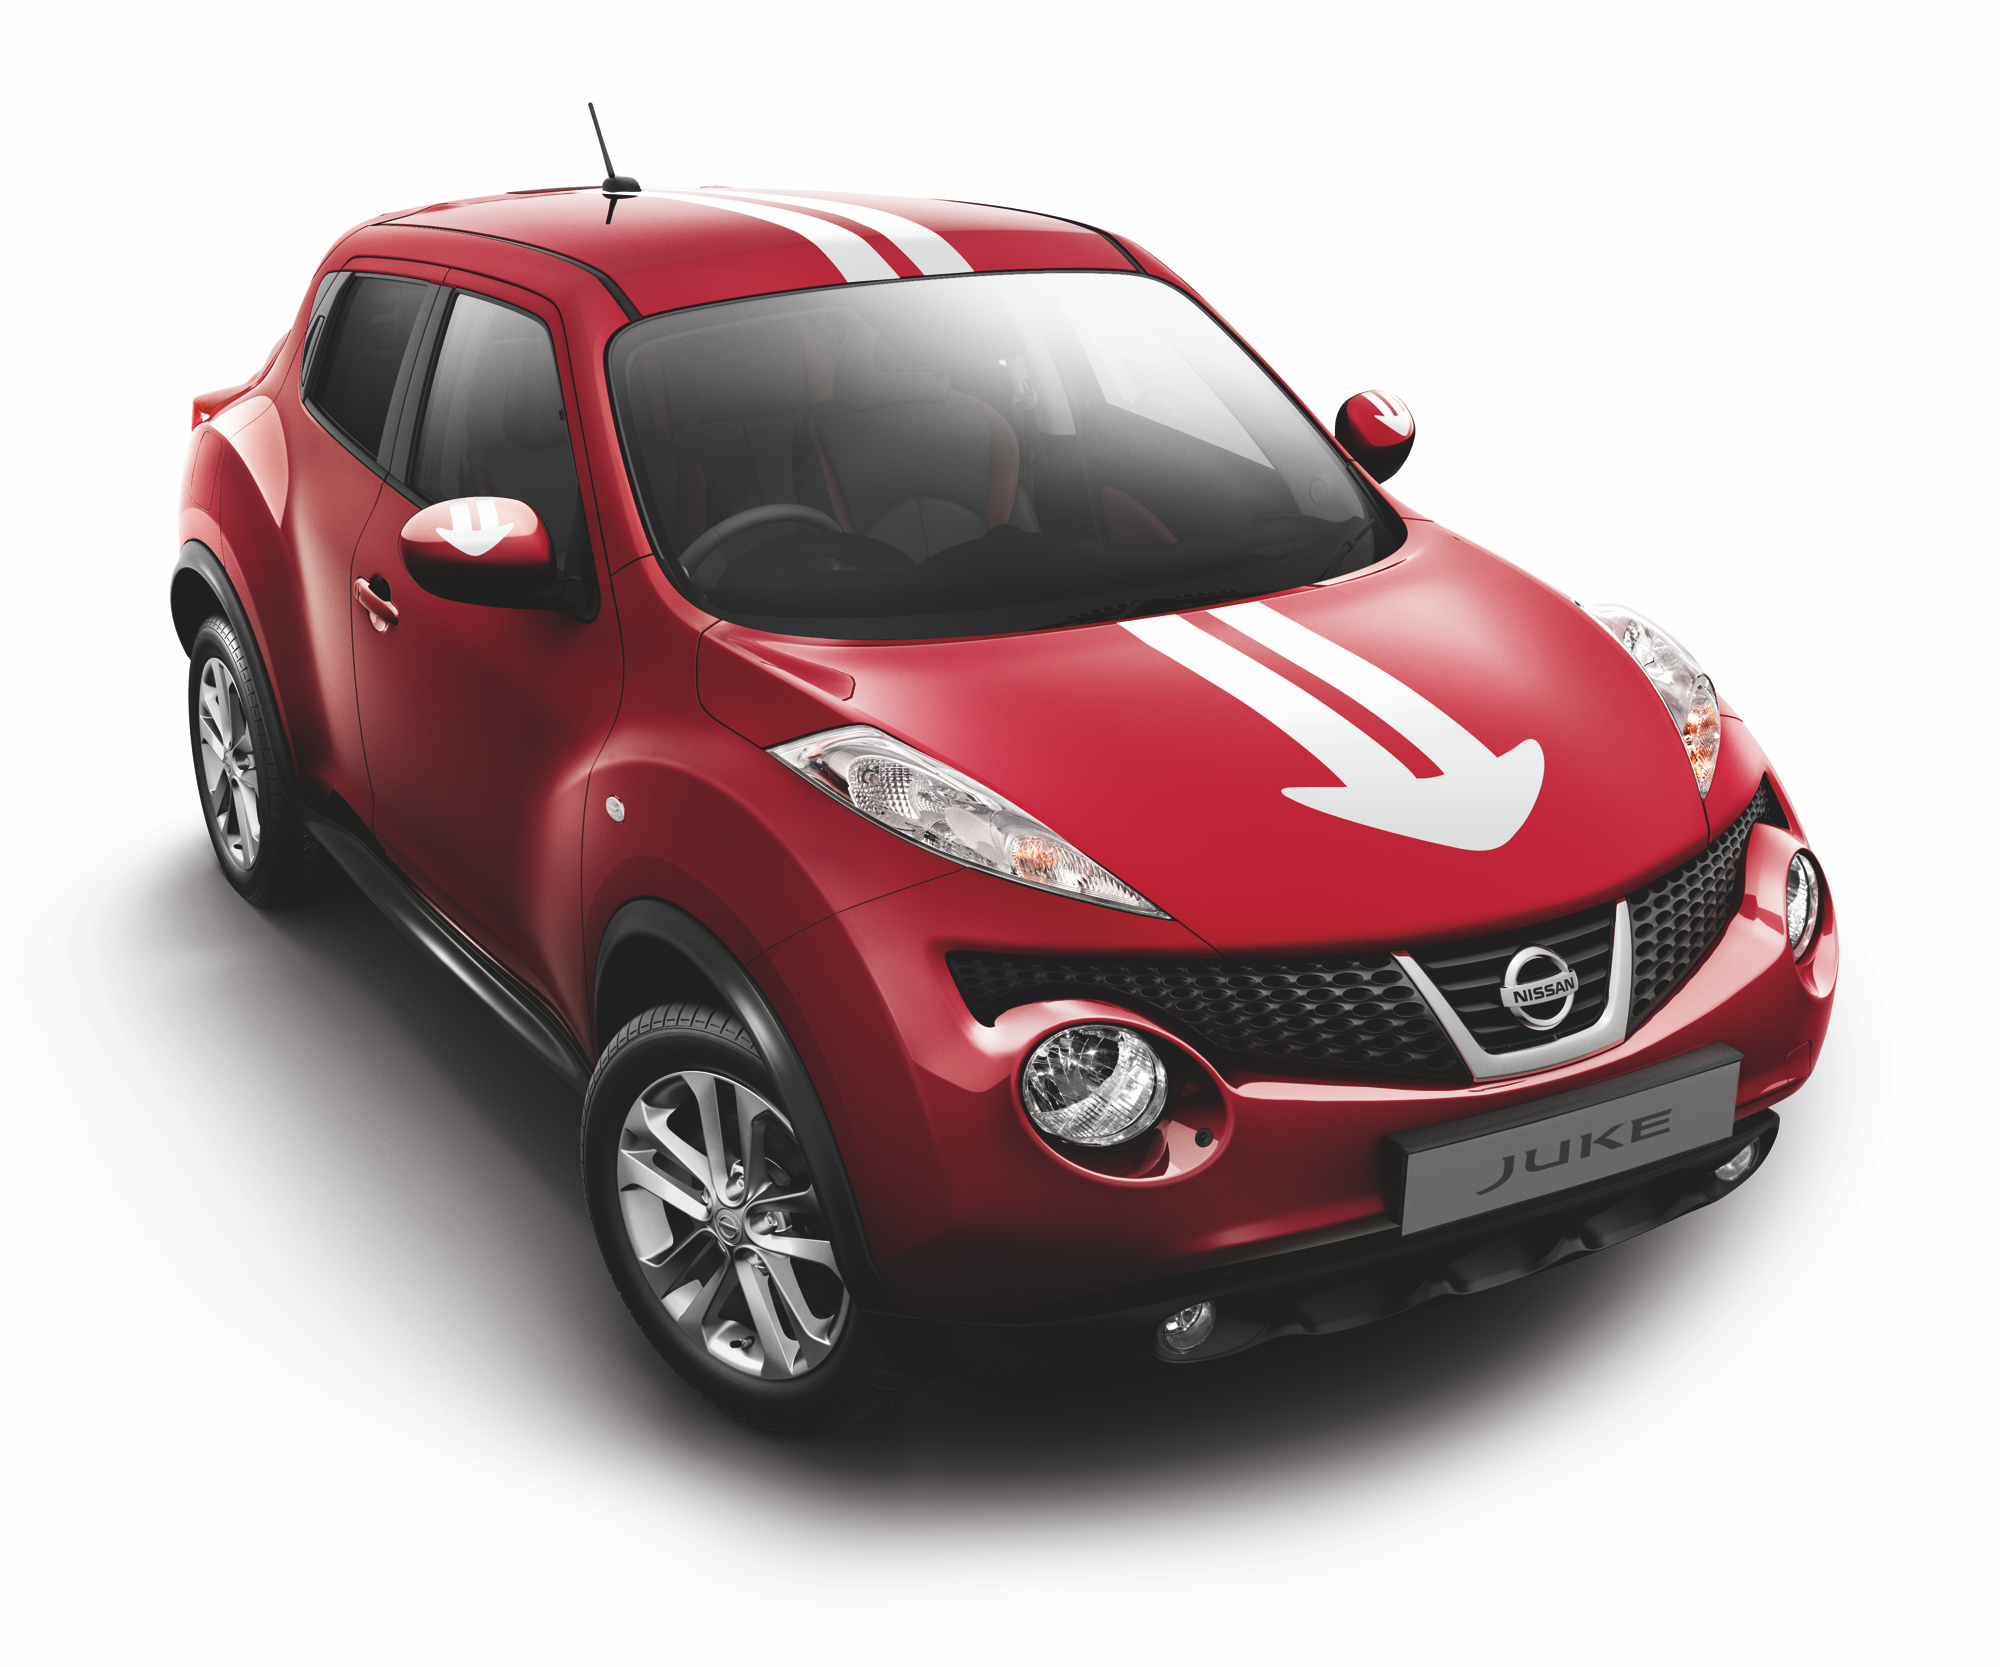 Nissan Genuine Juke F15 Urban Style Stripes Decal Bonnet